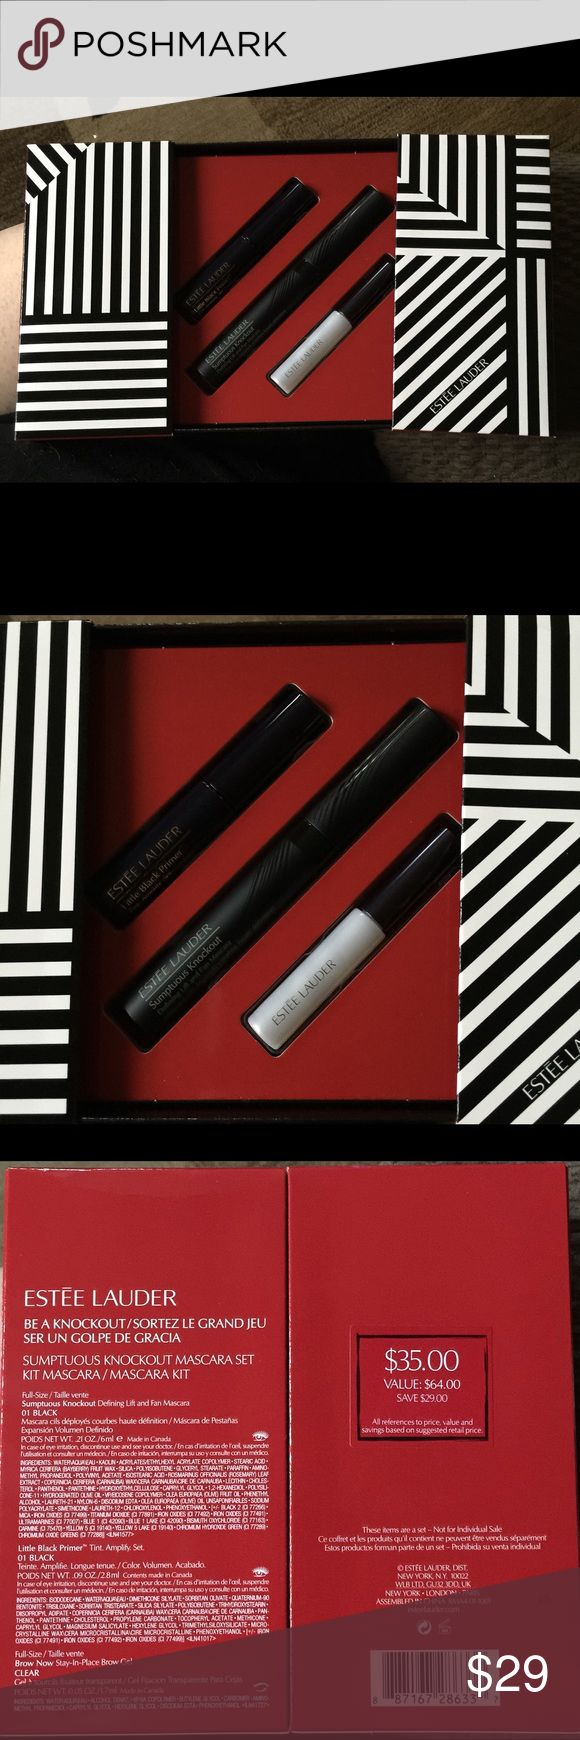 🎉HP 1/19!🎉Ester Lauder Be A Knockout Mascara Set BNIB, 100% authentic! A fabulous trio for long lashes and beautiful brows.  A $64 value!  This special value collection includes: •Full size Sumptuous Knockout Defining Lift and Fan Mascara (0.2 oz) •Free gift deluxe travel size Brow Now Stay-In-Place Brow Gel •Free gift deluxe travel size Little Black Primer Estee Lauder Makeup Mascara